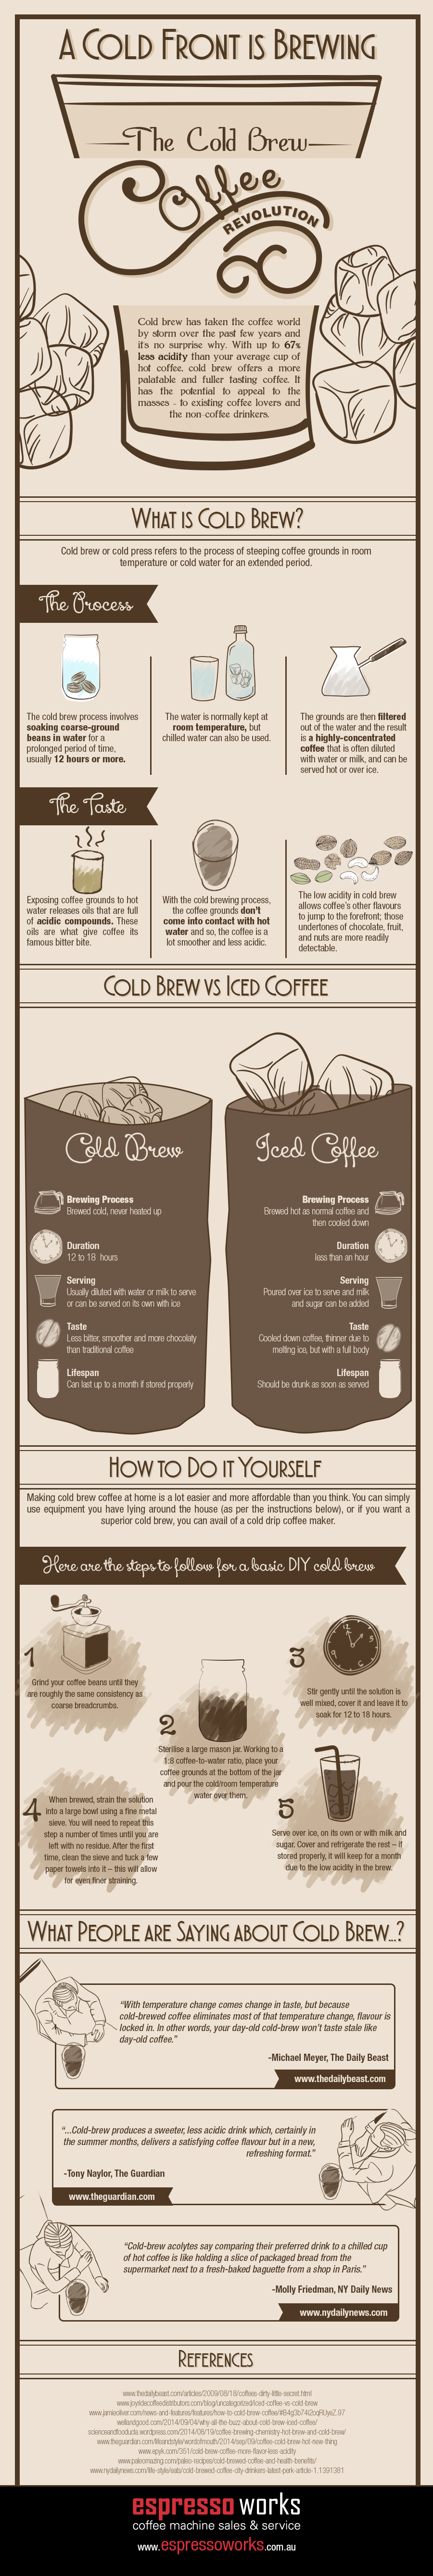 Cold-Brew-Coffee-Revolution-Infographic